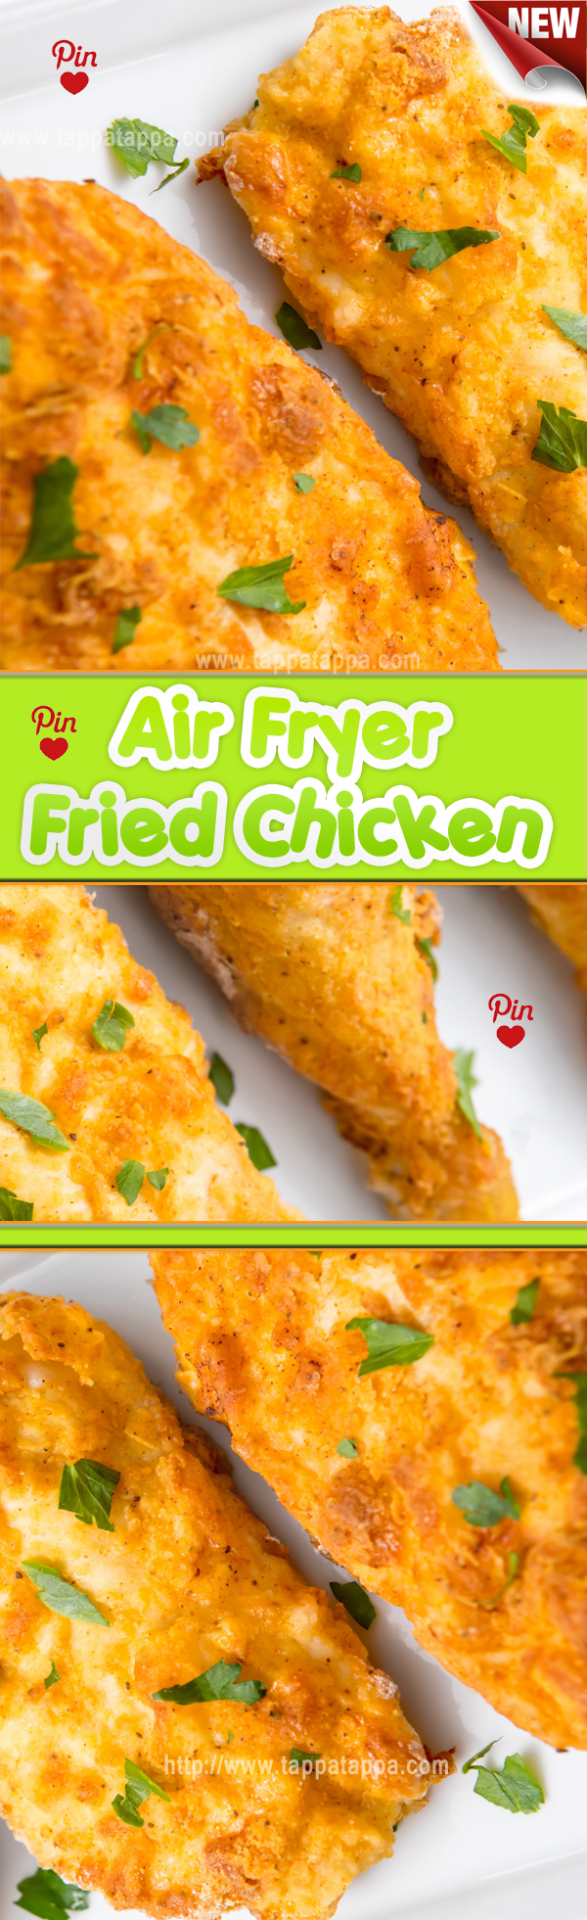 Air Fryer Fried #Chicken Recipe The one exception might be if you like a very thick breading on your fried chicken. If you double dip your chicken in flour for the coating its going to be hard to hydrate all that flour in an air fryer and youll almost certainly end up with floury spots that havent really cooked. #airfryerrecipes